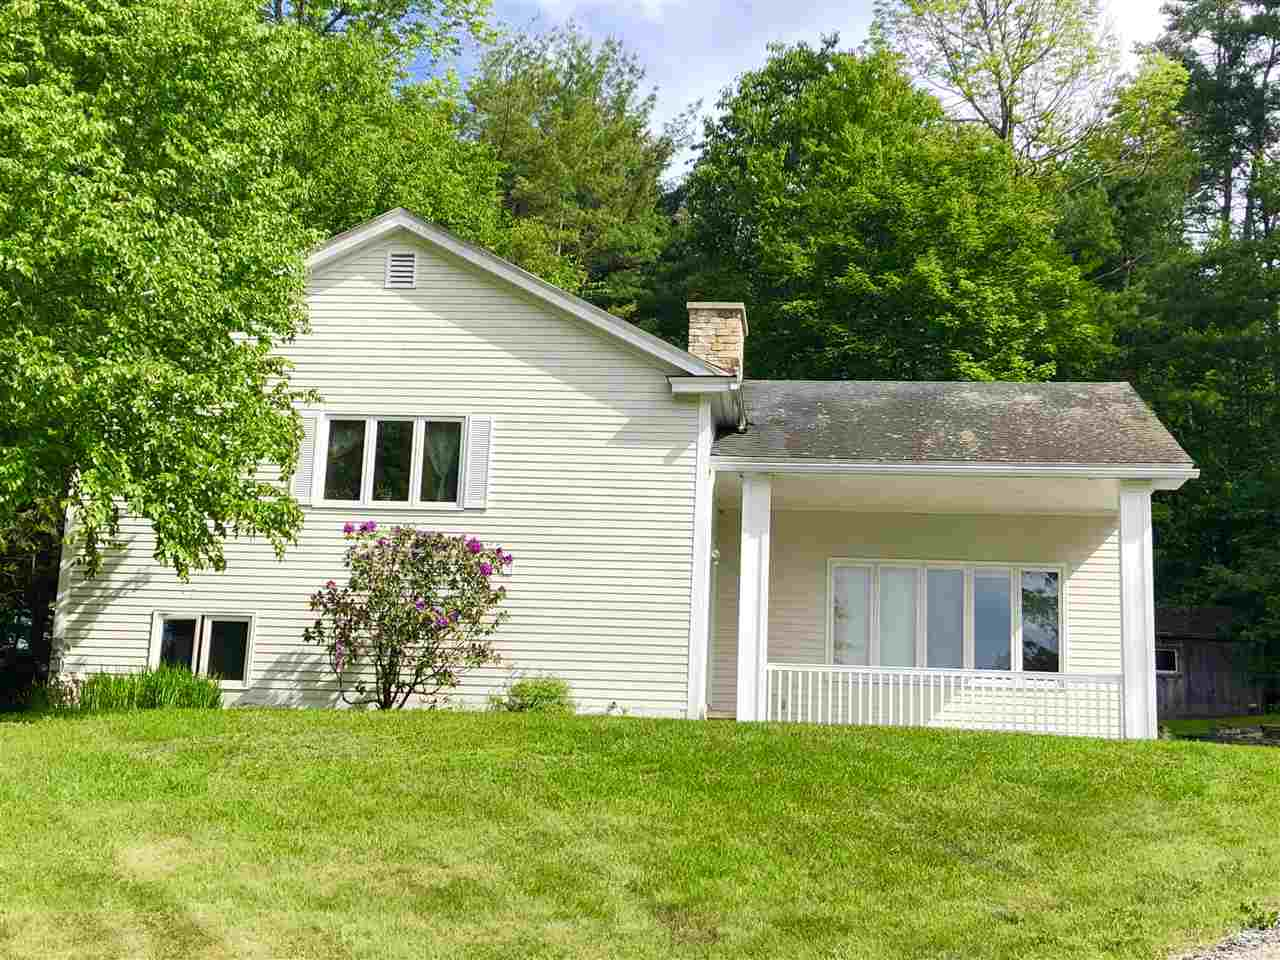 MLS 4745254: 46 Sawyer Brook Road, Orford NH